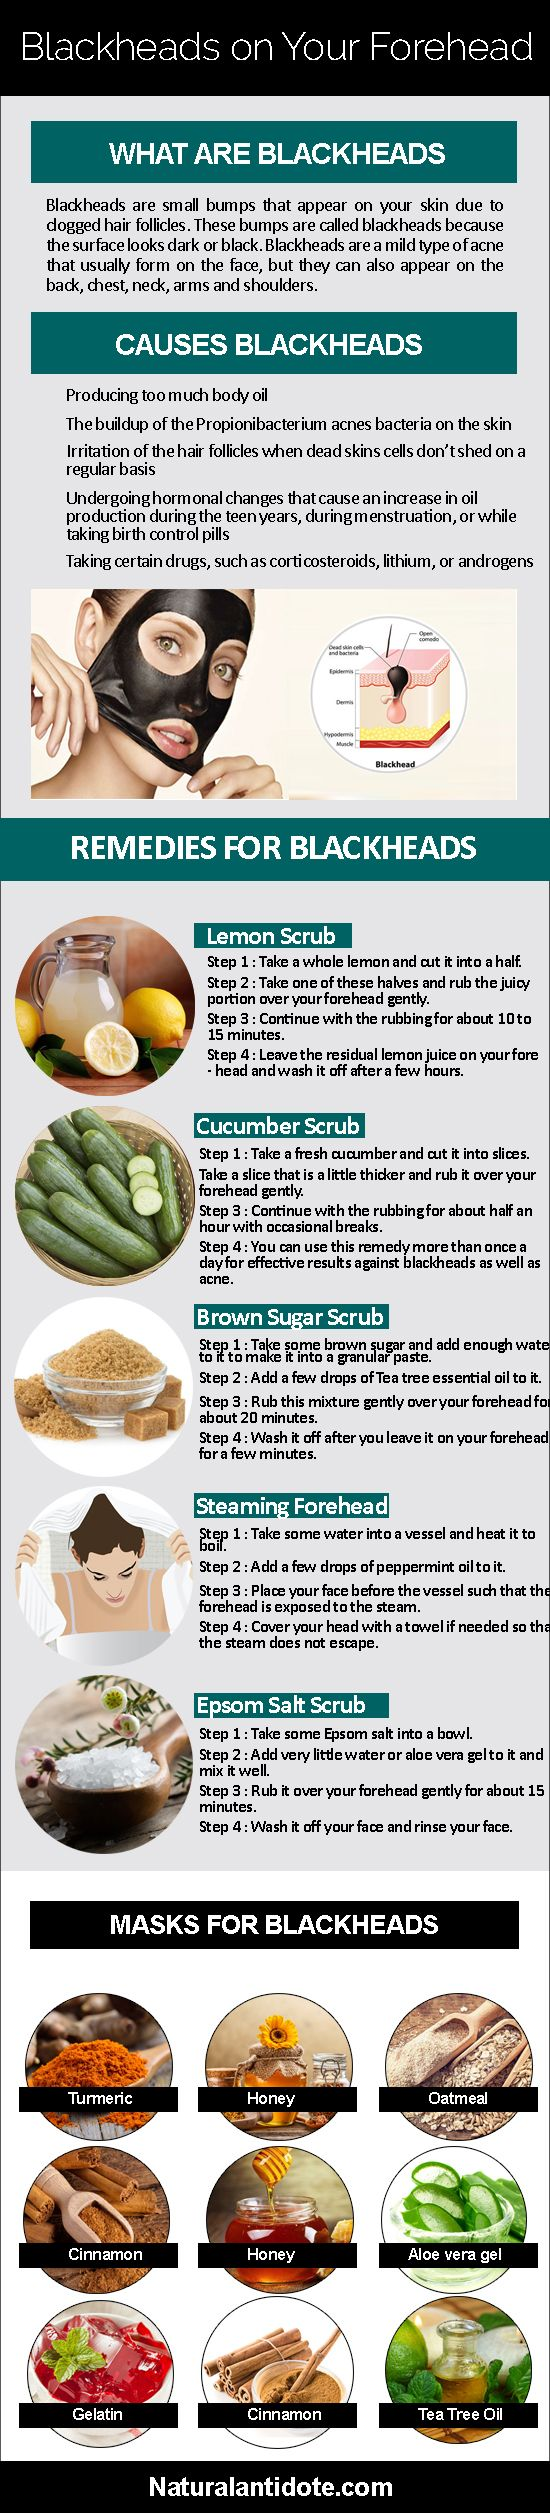 10 Amazing Home Remedies That Act Against Blackheads On The Forehead